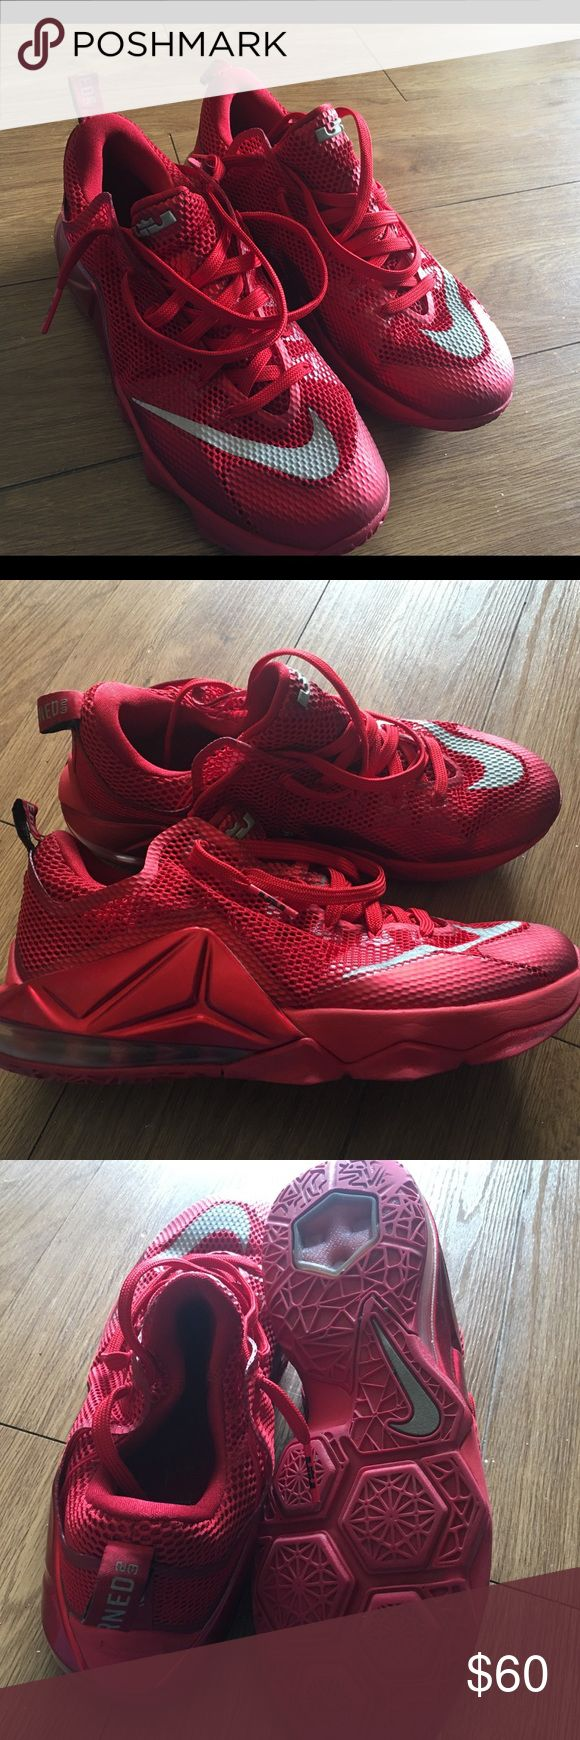 Lebron James Gym Shoes Mens Size 10 Previously worn but in excellent condition. Nike Shoes Sneakers